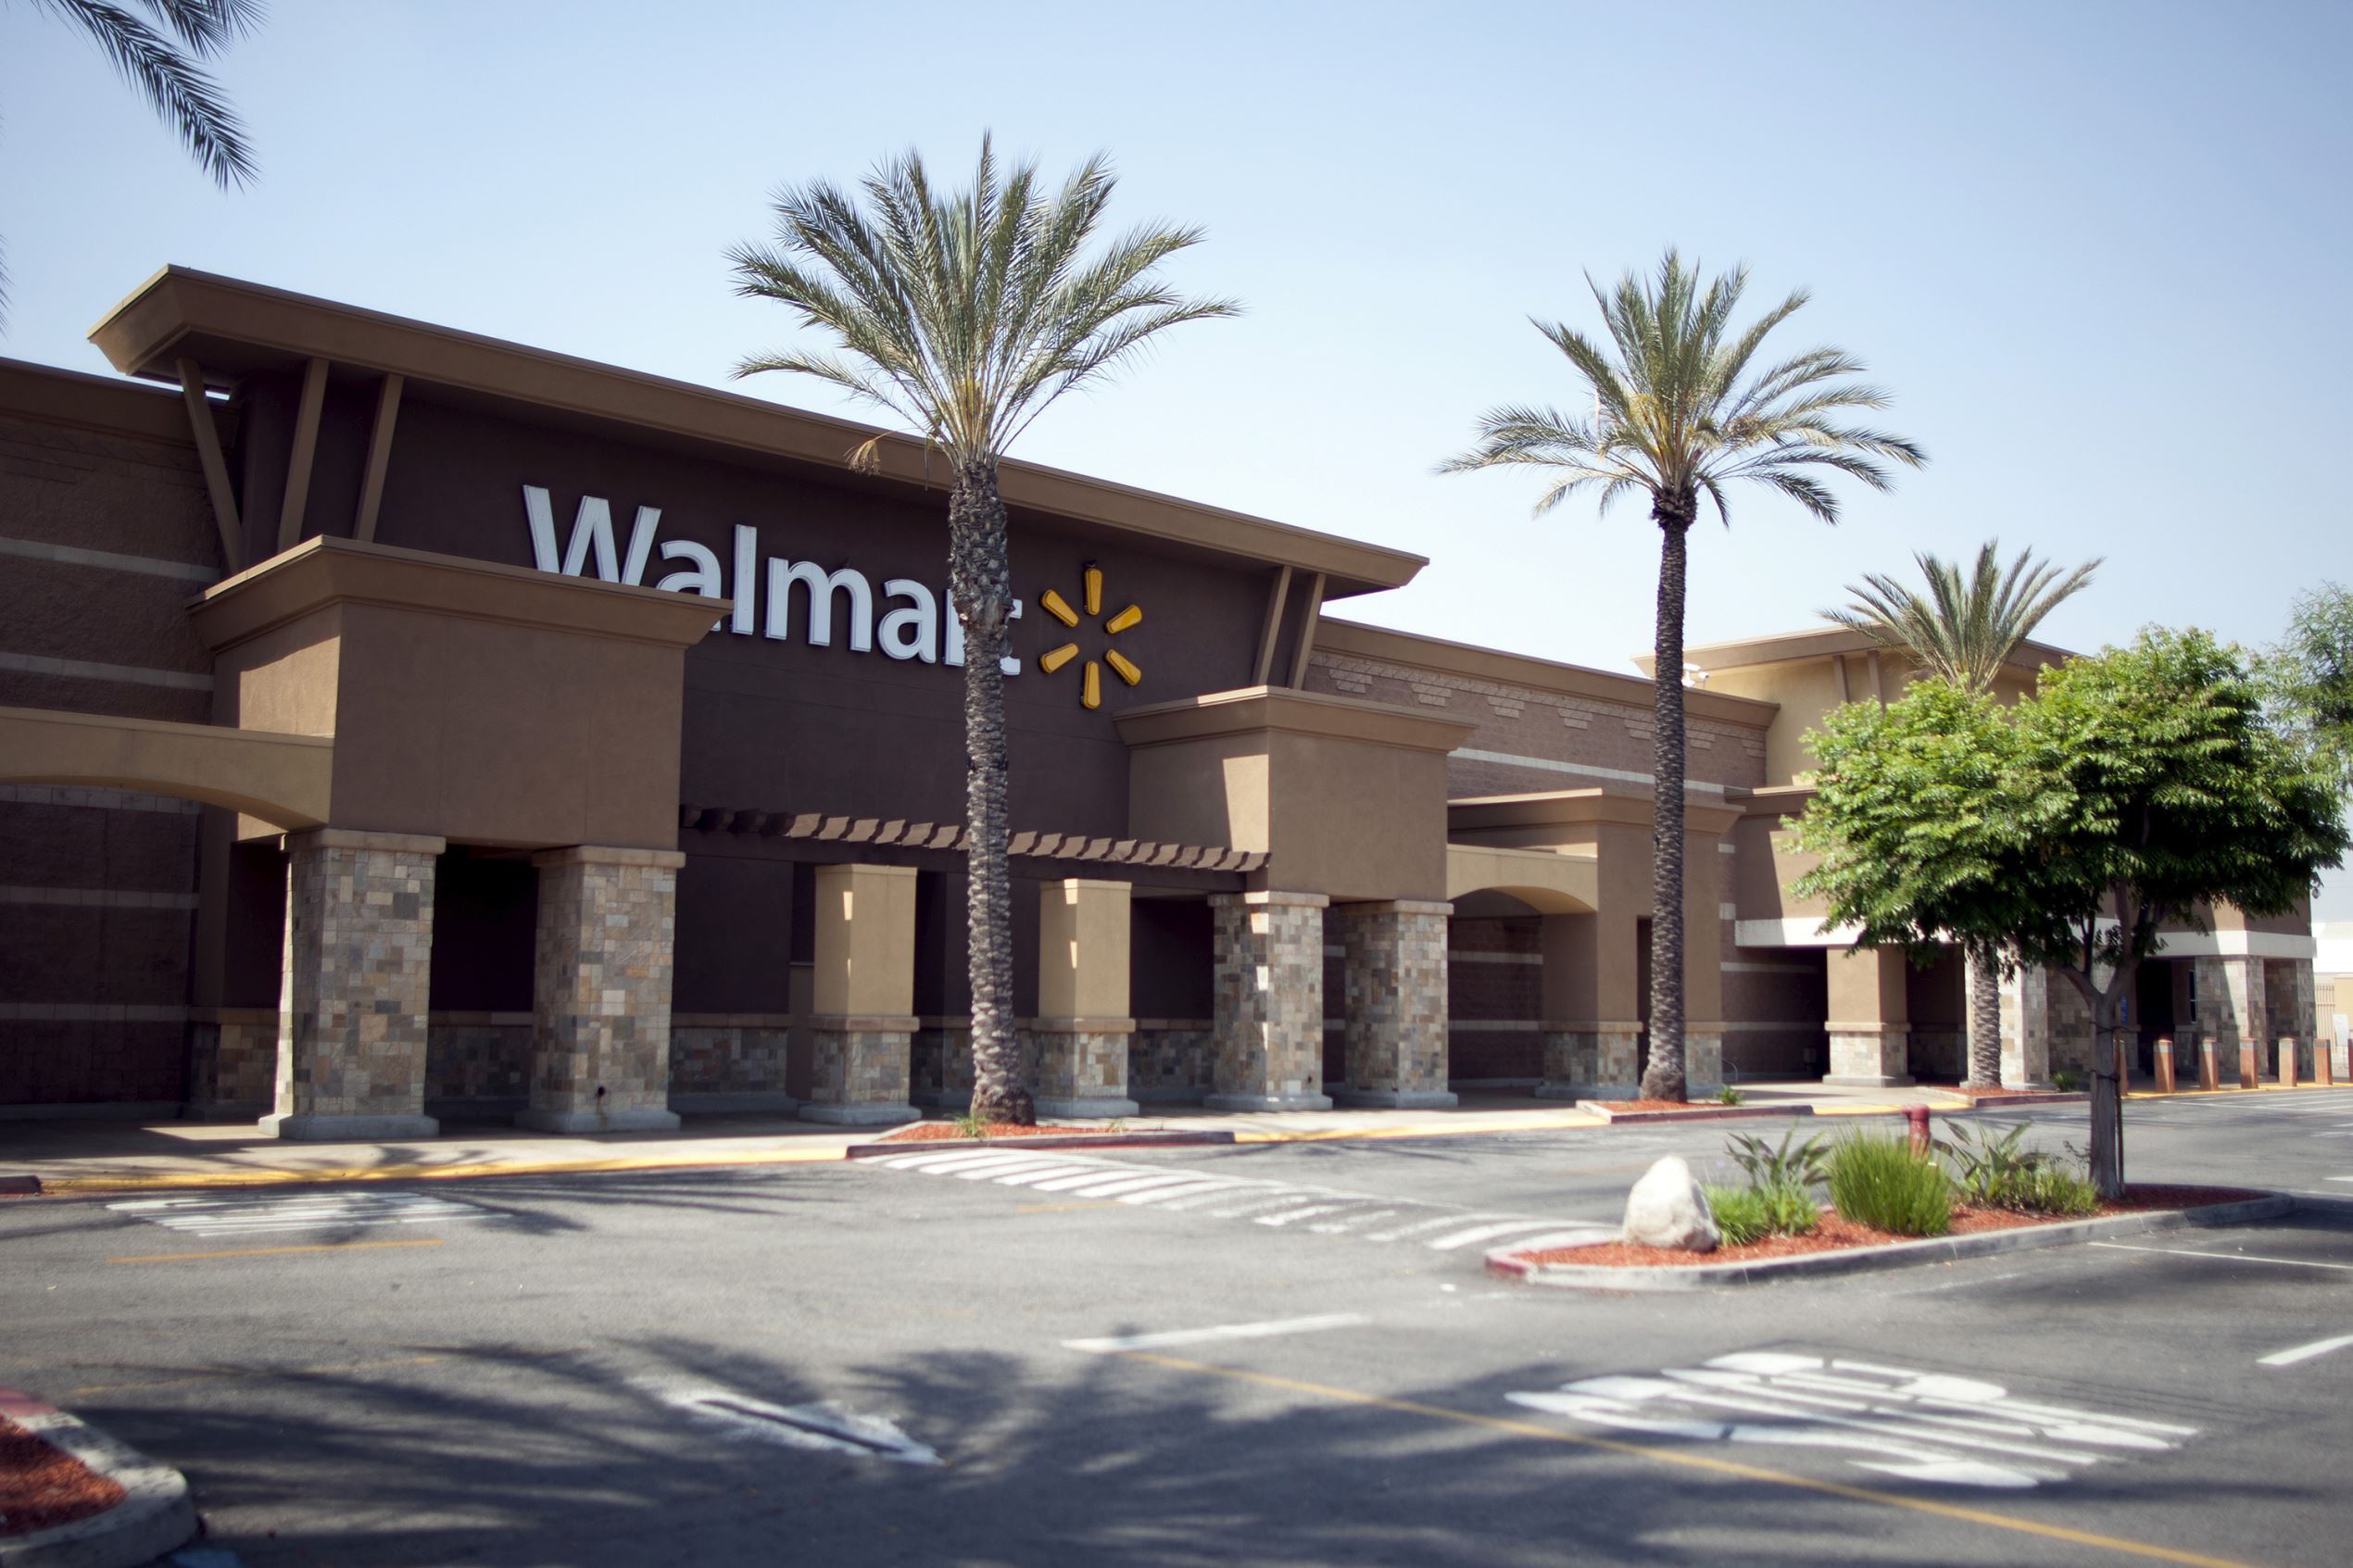 The closed Pico Rivera Wal-mart Store is seen in Los Angeles, California, April 20, 2015. ÊA union on Monday asked the National Labor Relations Board to force Wal-Mart to reinstate employees at five stores, accusing the retailer of closing the locations to retaliate against workers for attempts to organize for better pay and benefits.